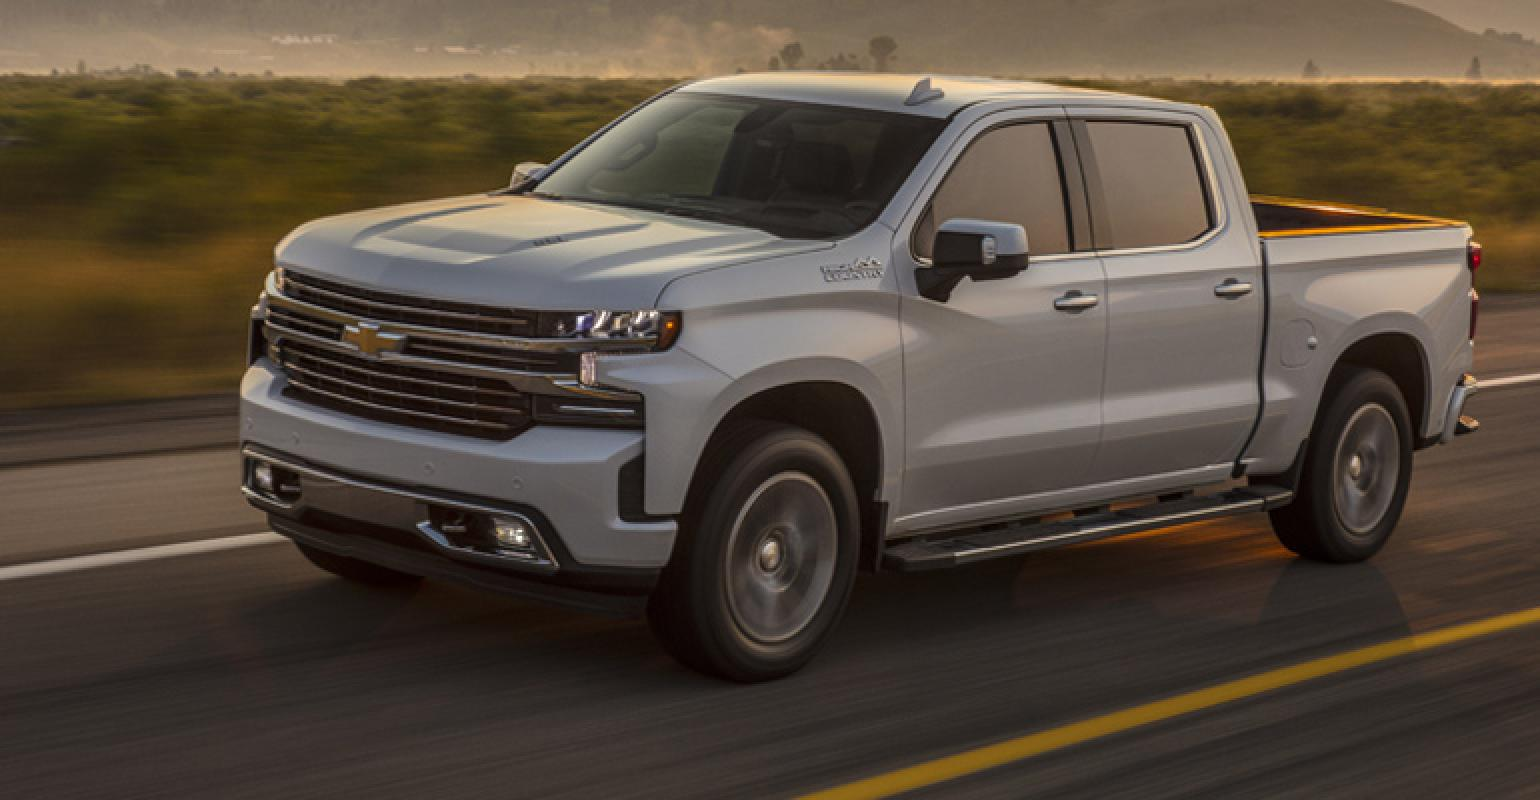 2019 Chevy Silverado High Country